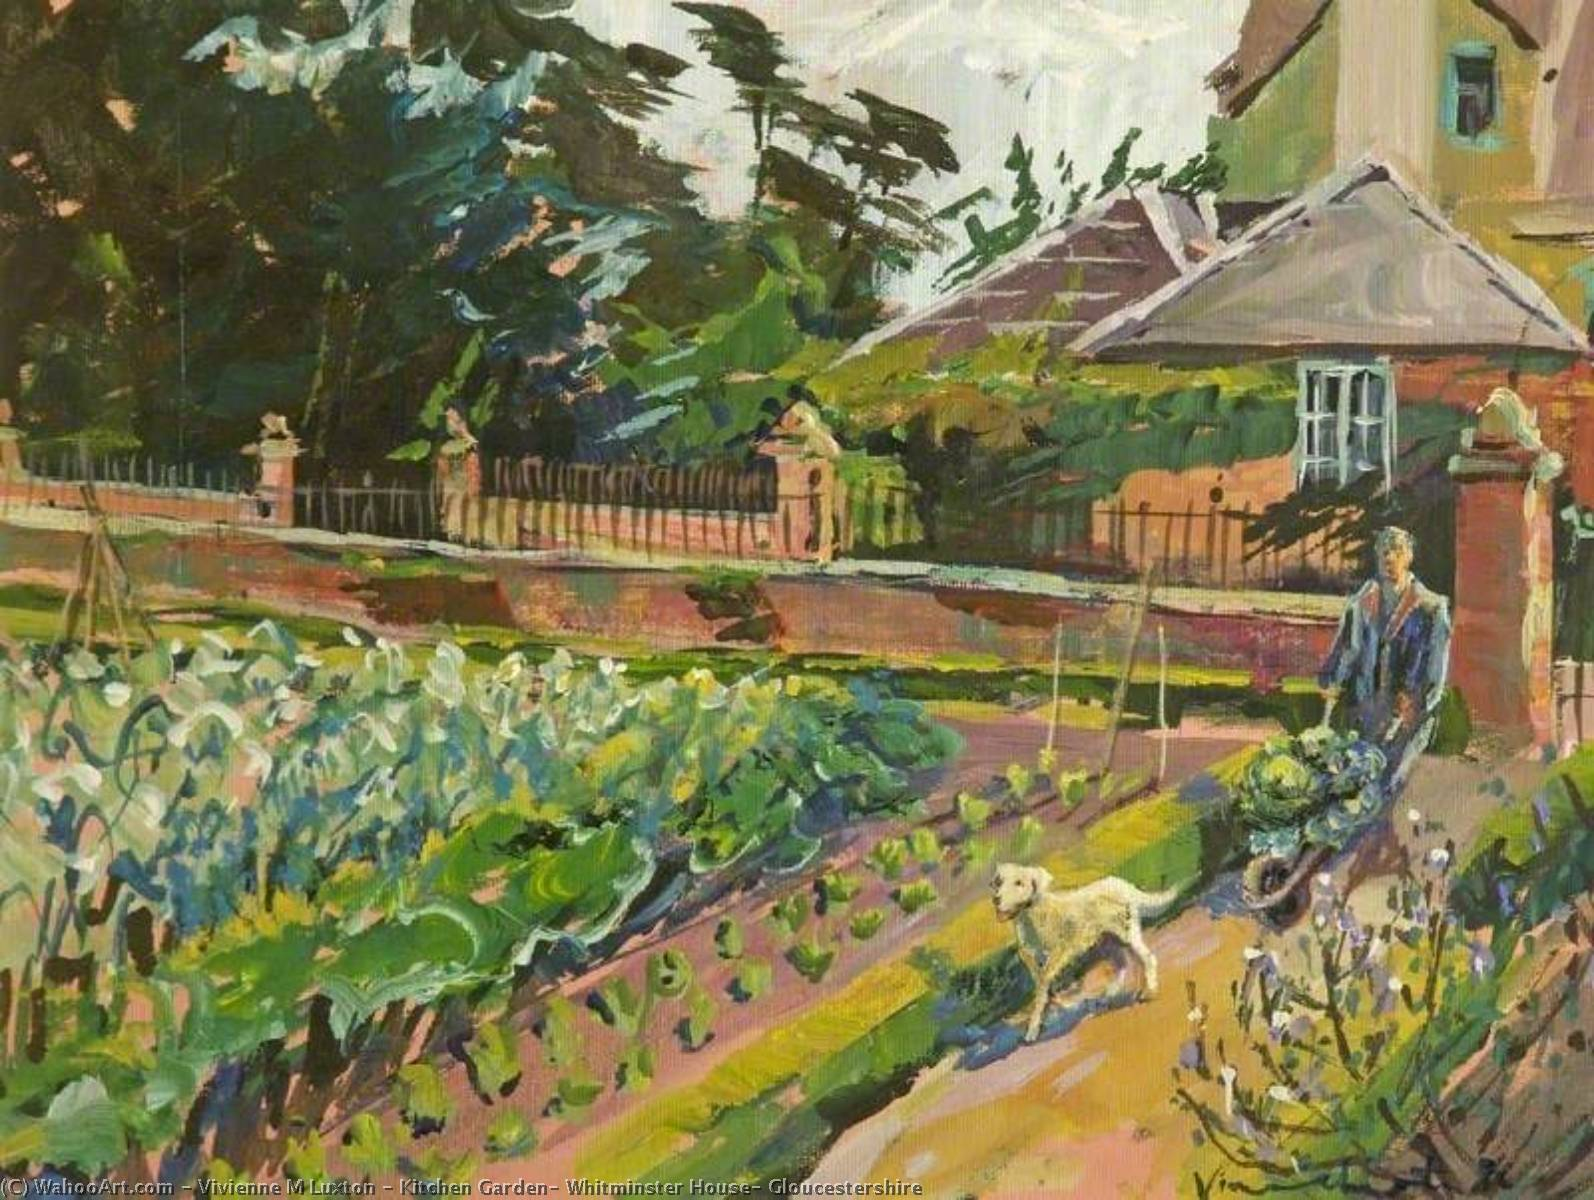 Kitchen Garden, Whitminster House, Gloucestershire, 1991 by Vivienne M Luxton | Oil Painting | ArtsDot.com